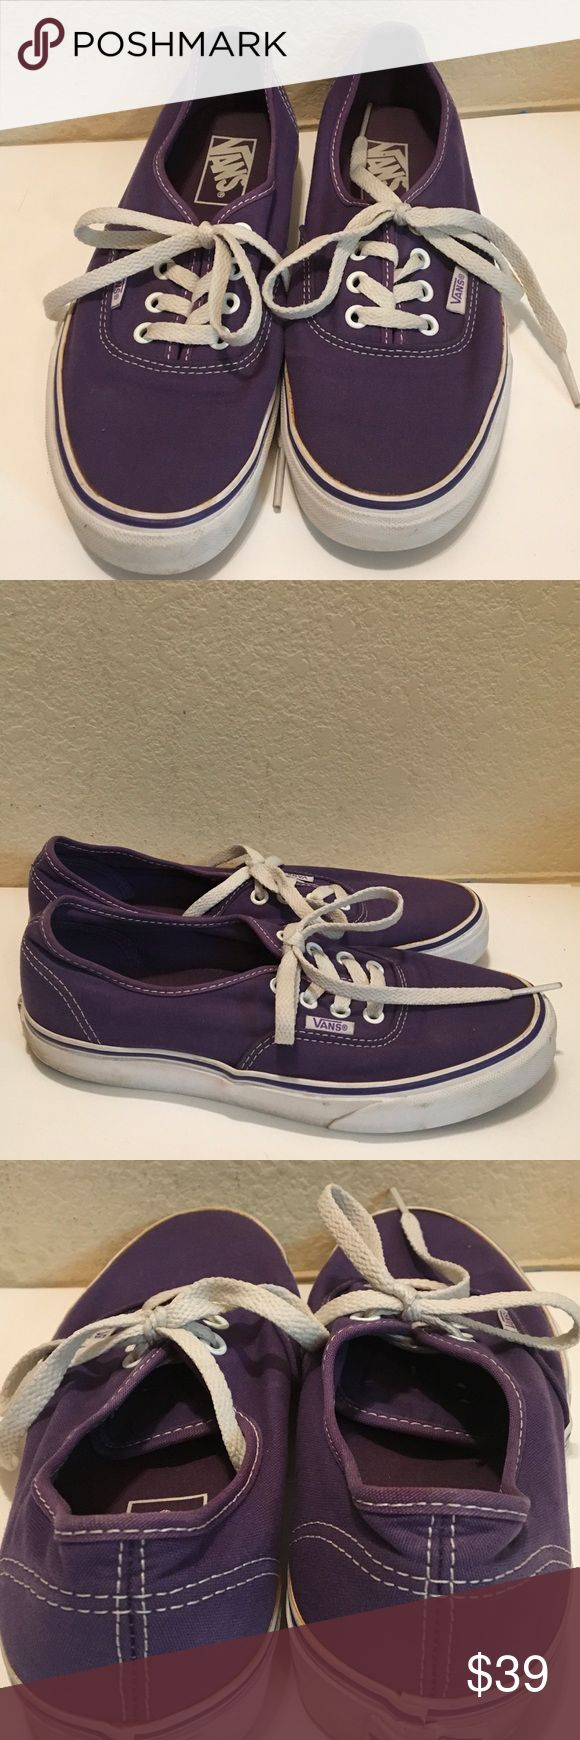 VANS PURPLE lace up sneakers trending M-6 W-7.5 Trending hot shoes in bright purple canvas surrounded by white plastic-sides. . Soles are rubberized tread Lace Up VANS label prominent. Unisex.. men's -6 M women's 7.5 M A great shoe in nice condition. 🍁🕉🍁🕉🍁🕉🍁 Vans Shoes